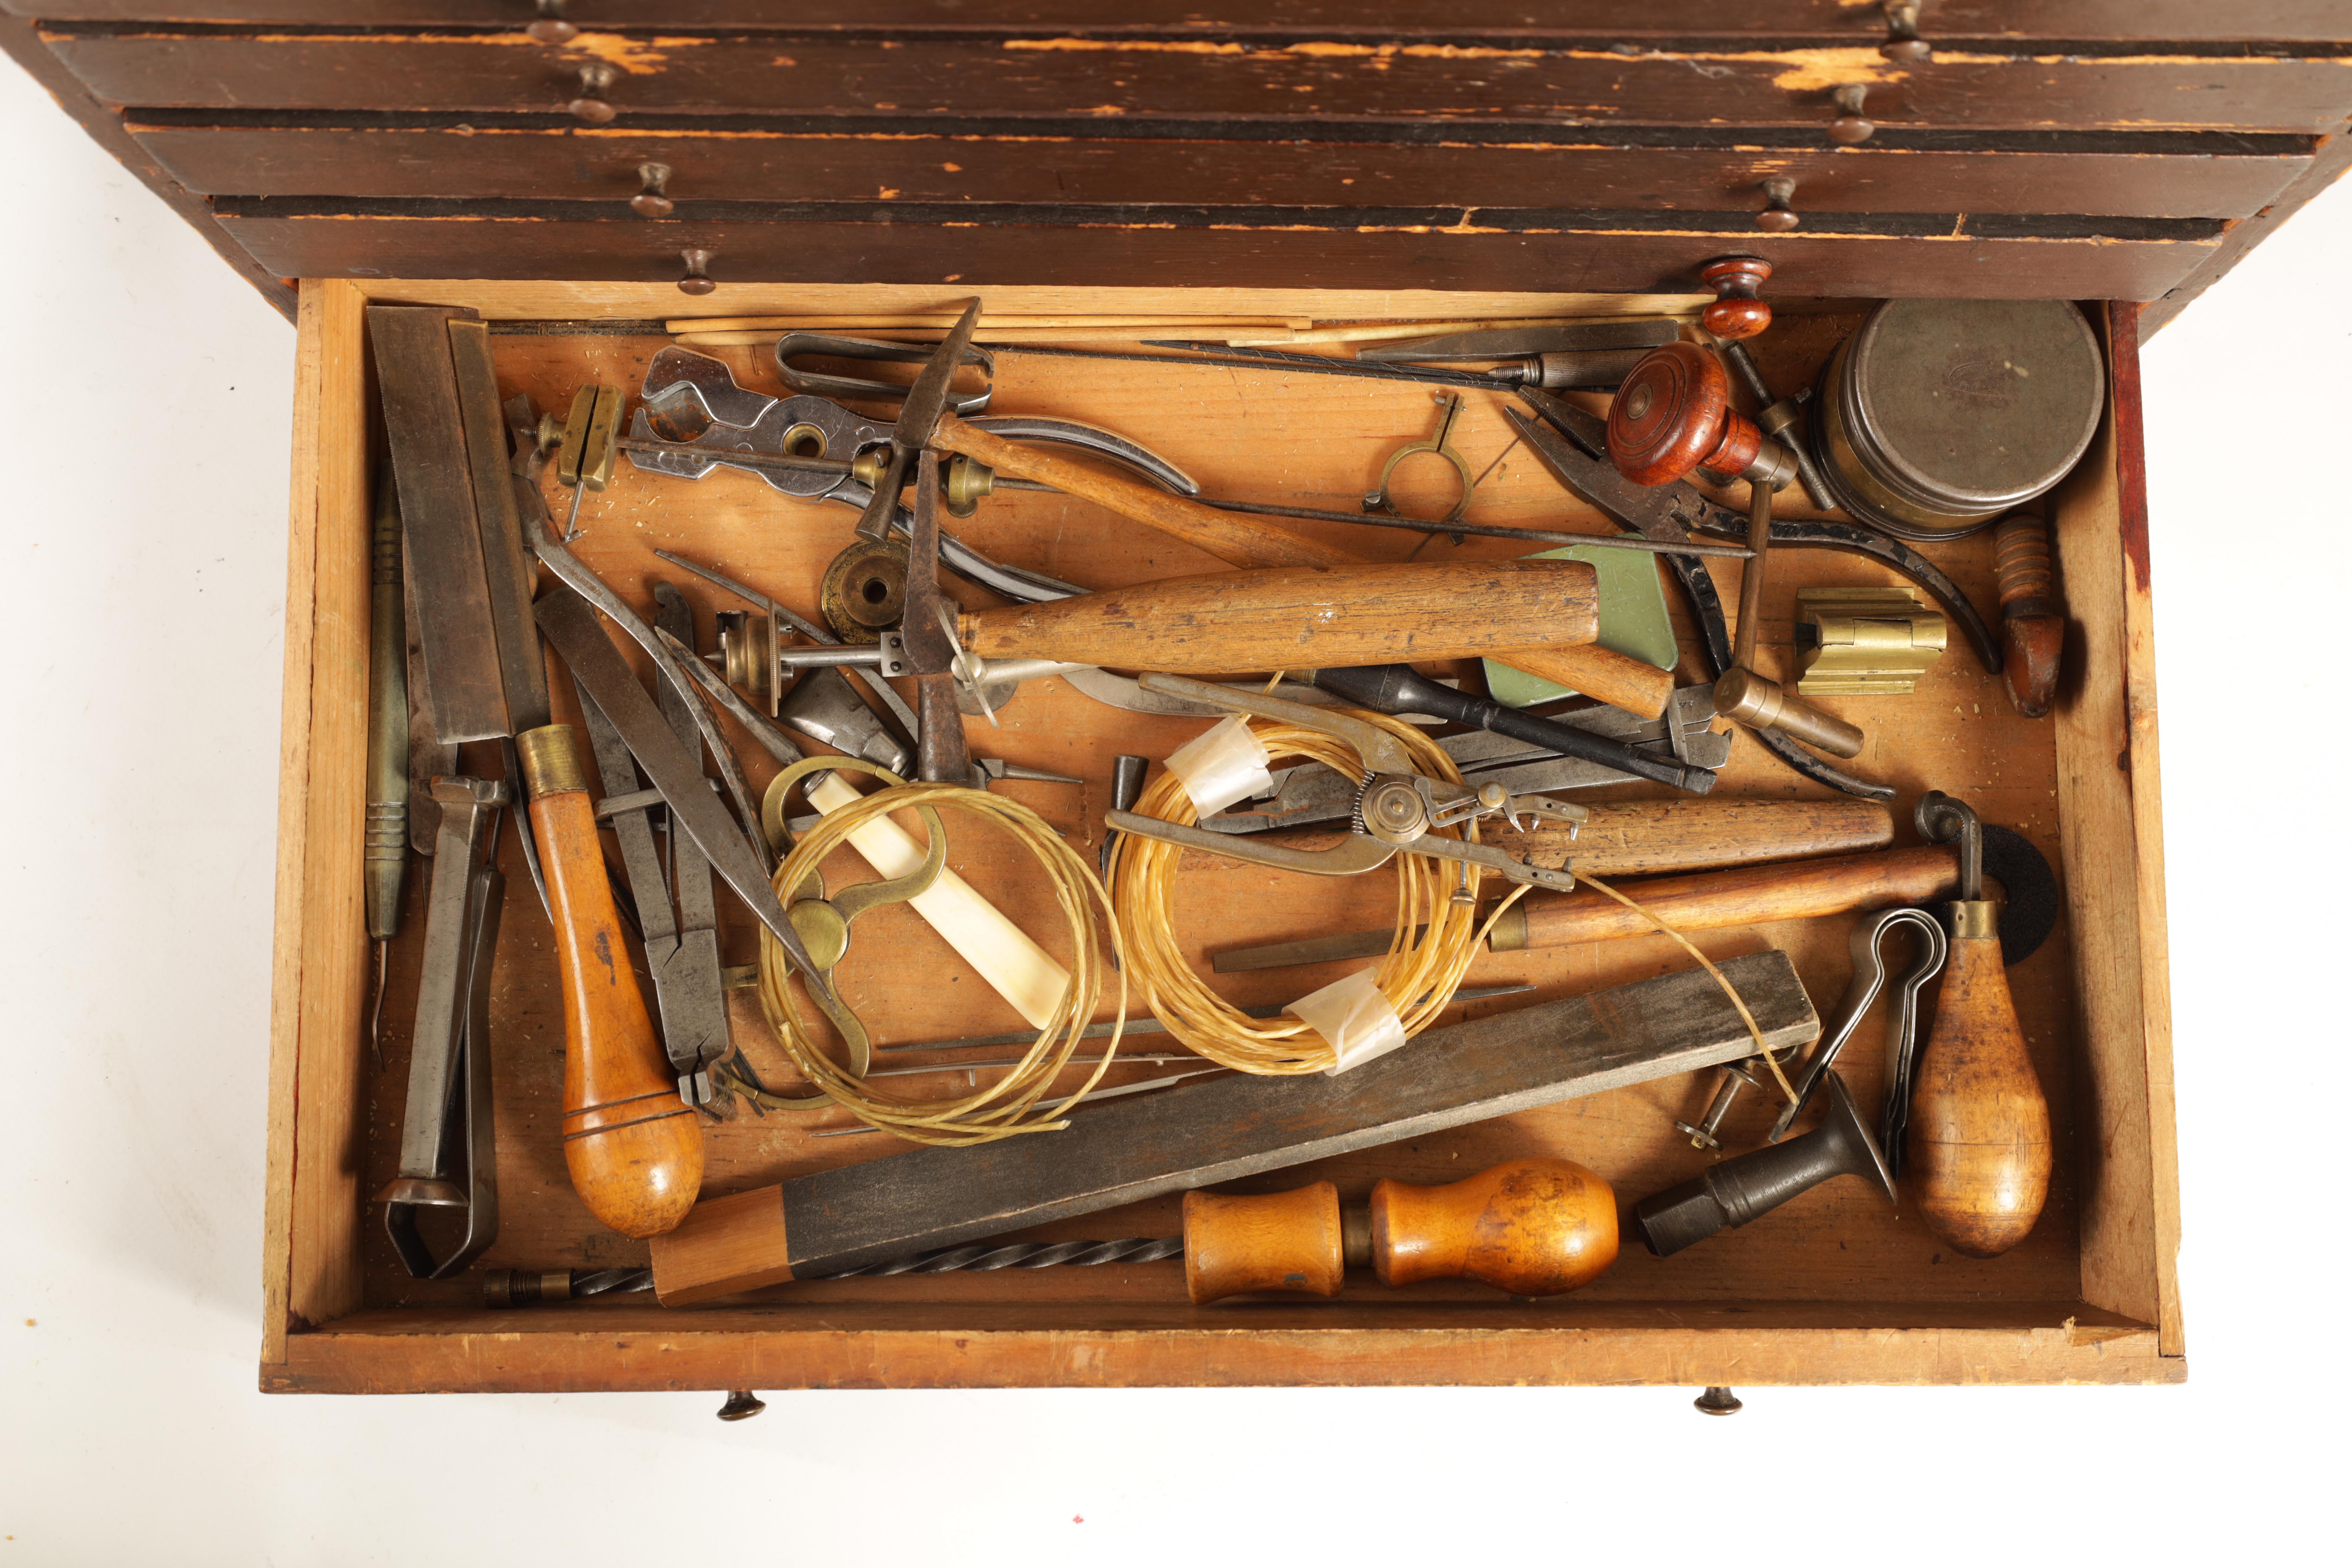 A LARGE COLLECTION OF JEWELERS AND WATCHMAKERS TOOLS contained in a set of pine drawers - Image 5 of 12